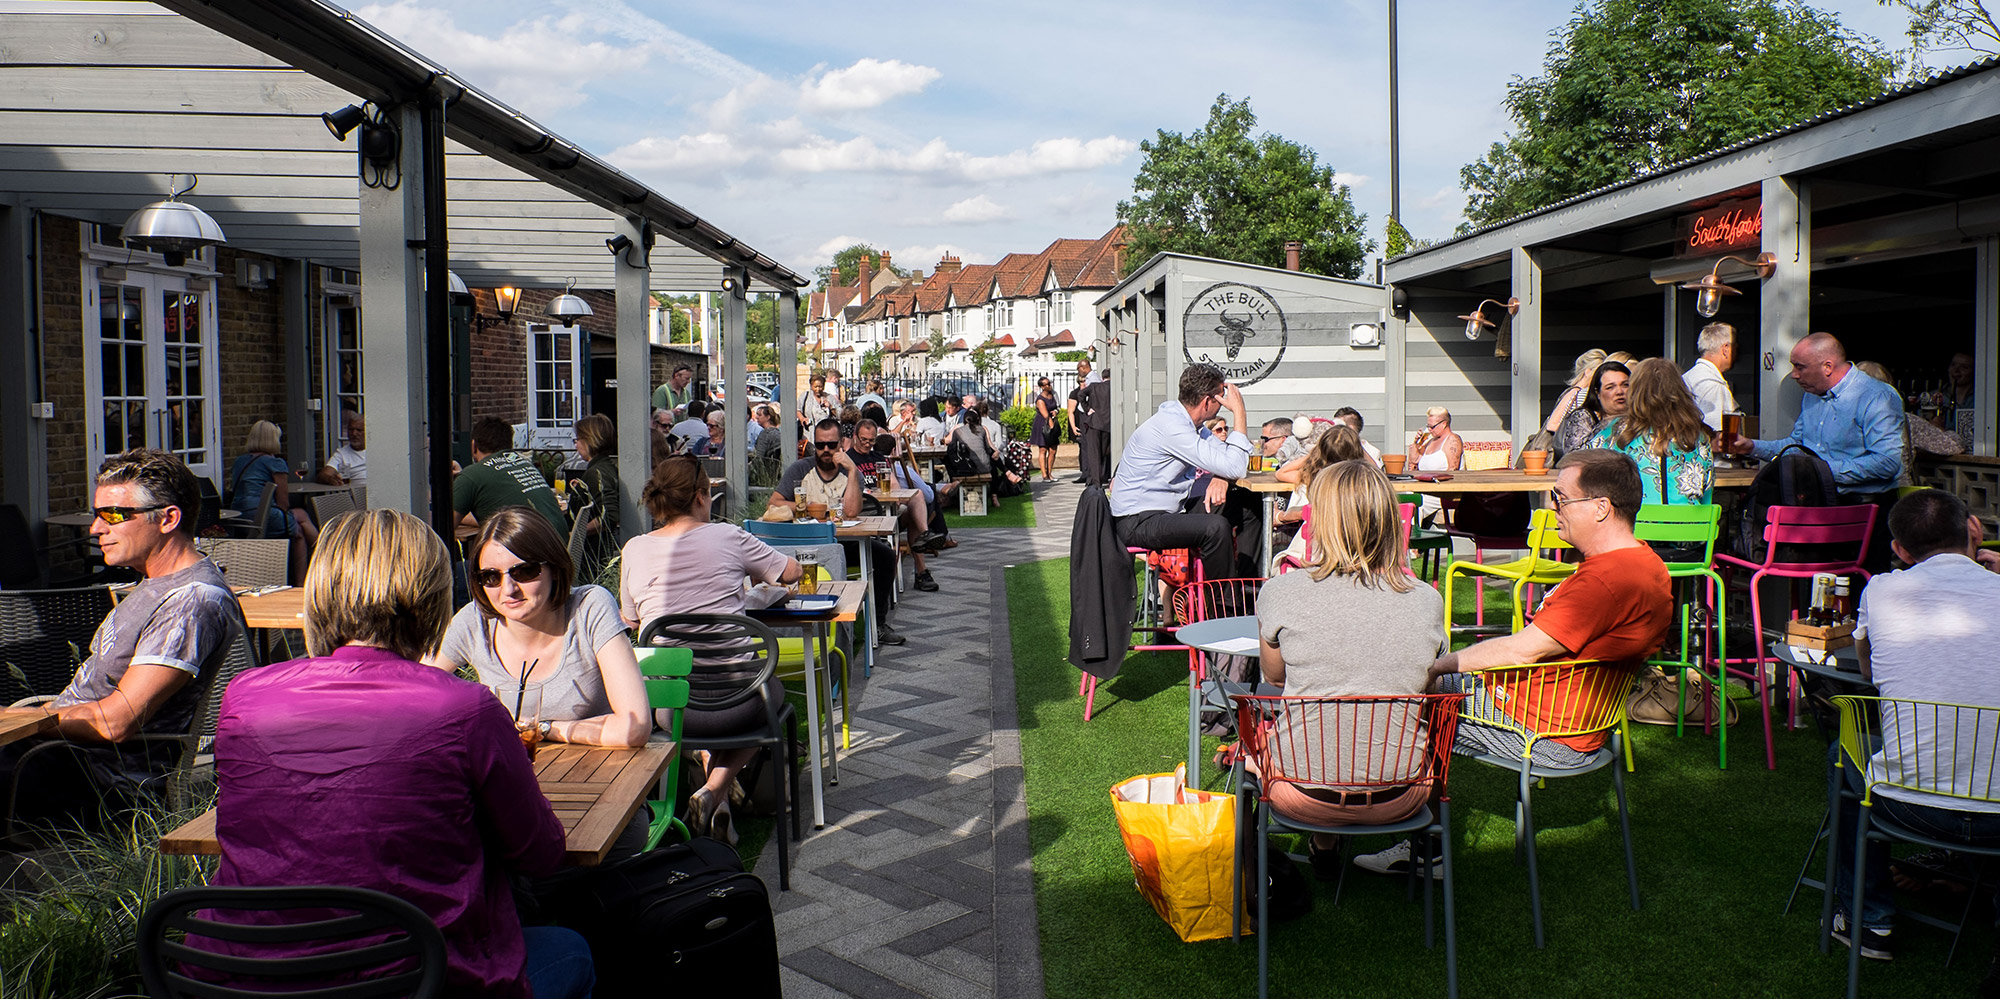 The Bull - Streatham - London